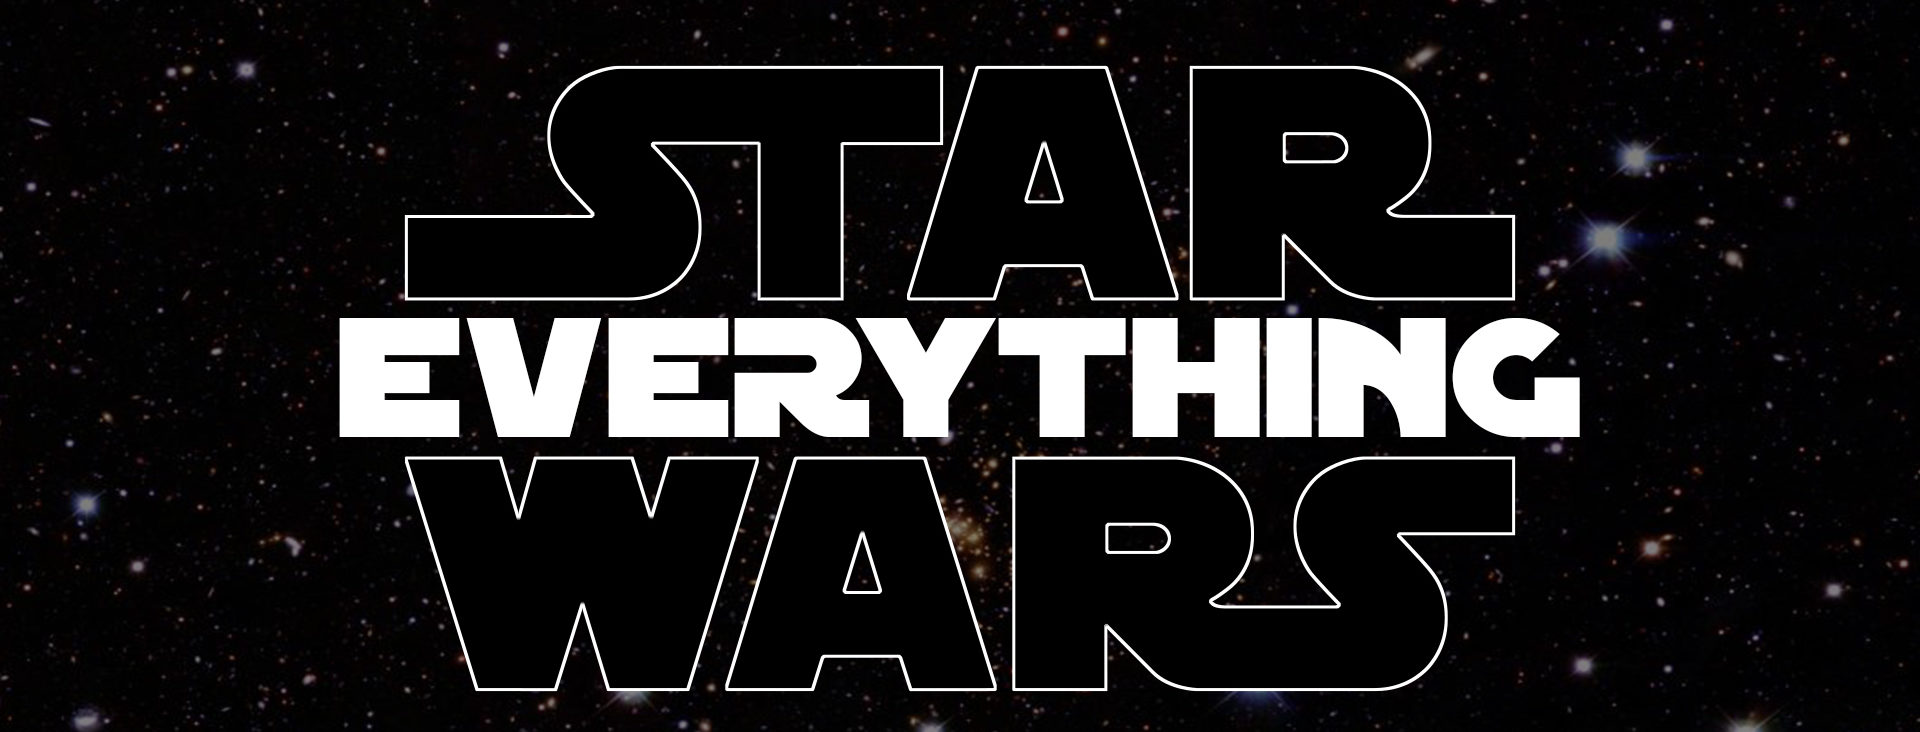 Star Wars EVERYTHING